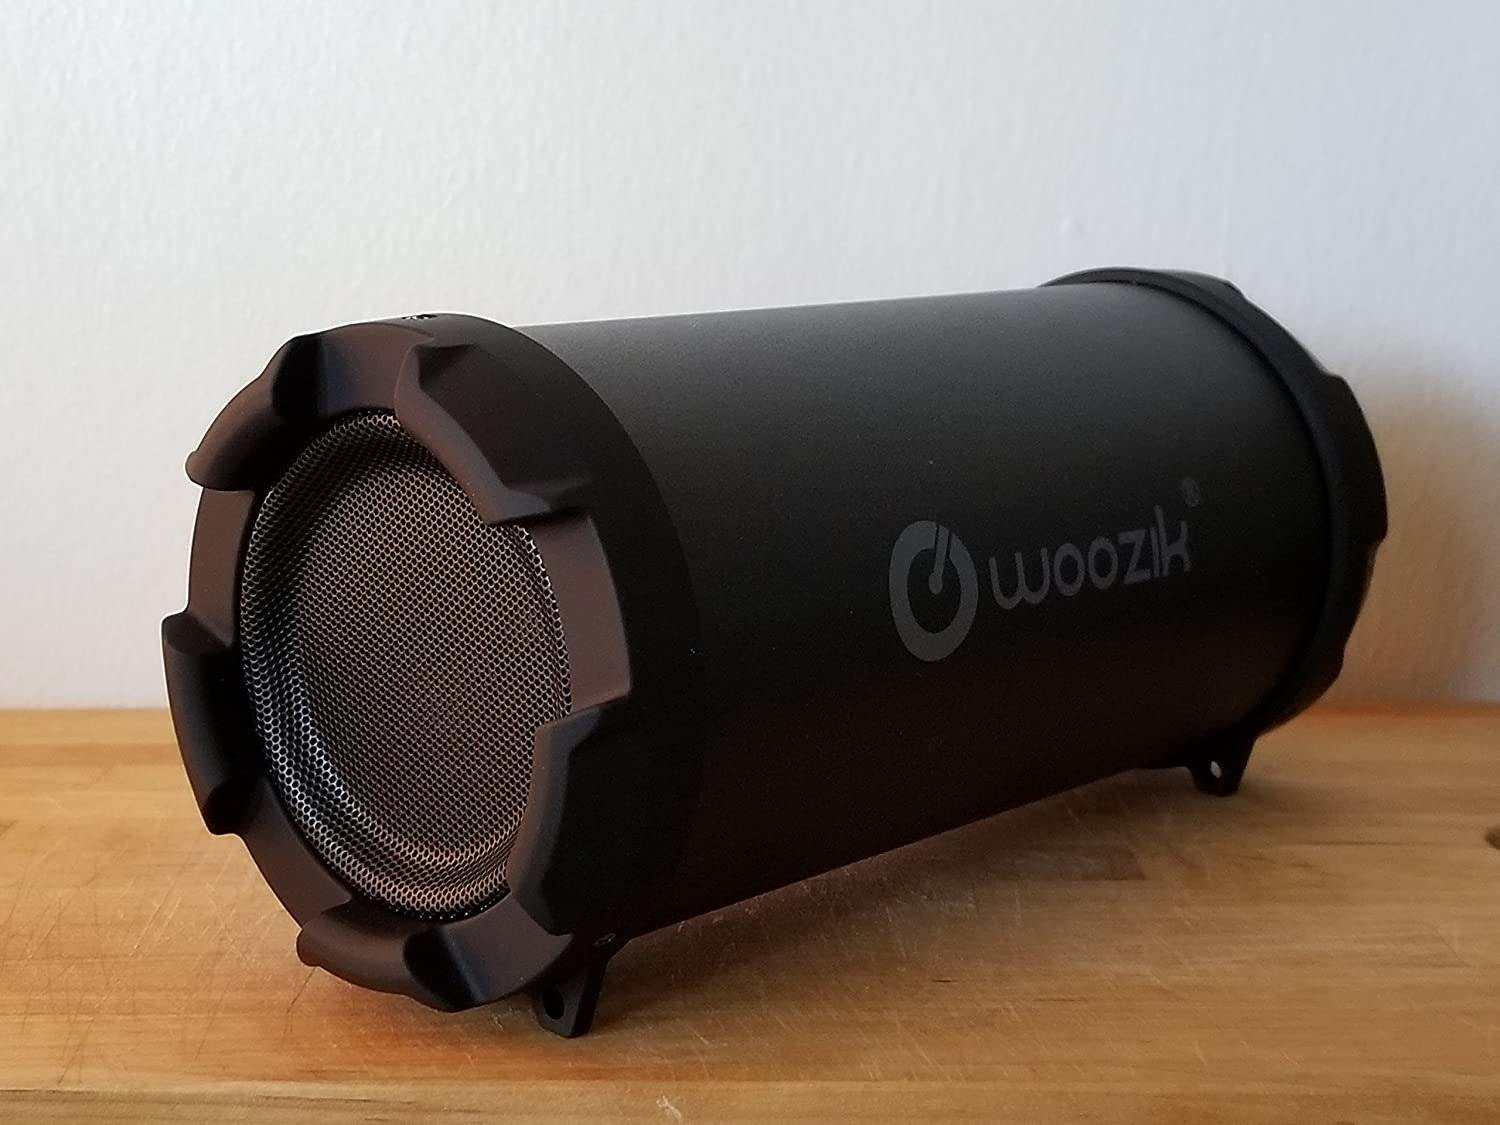 Amazon.com: Woozik S213 Wireless Bluetooth Loud Speaker - Outdoor/Indoor Portable Speaker with, FM Radio, SD Card Slot, AUX, Power Bank, and Dual Channel ...